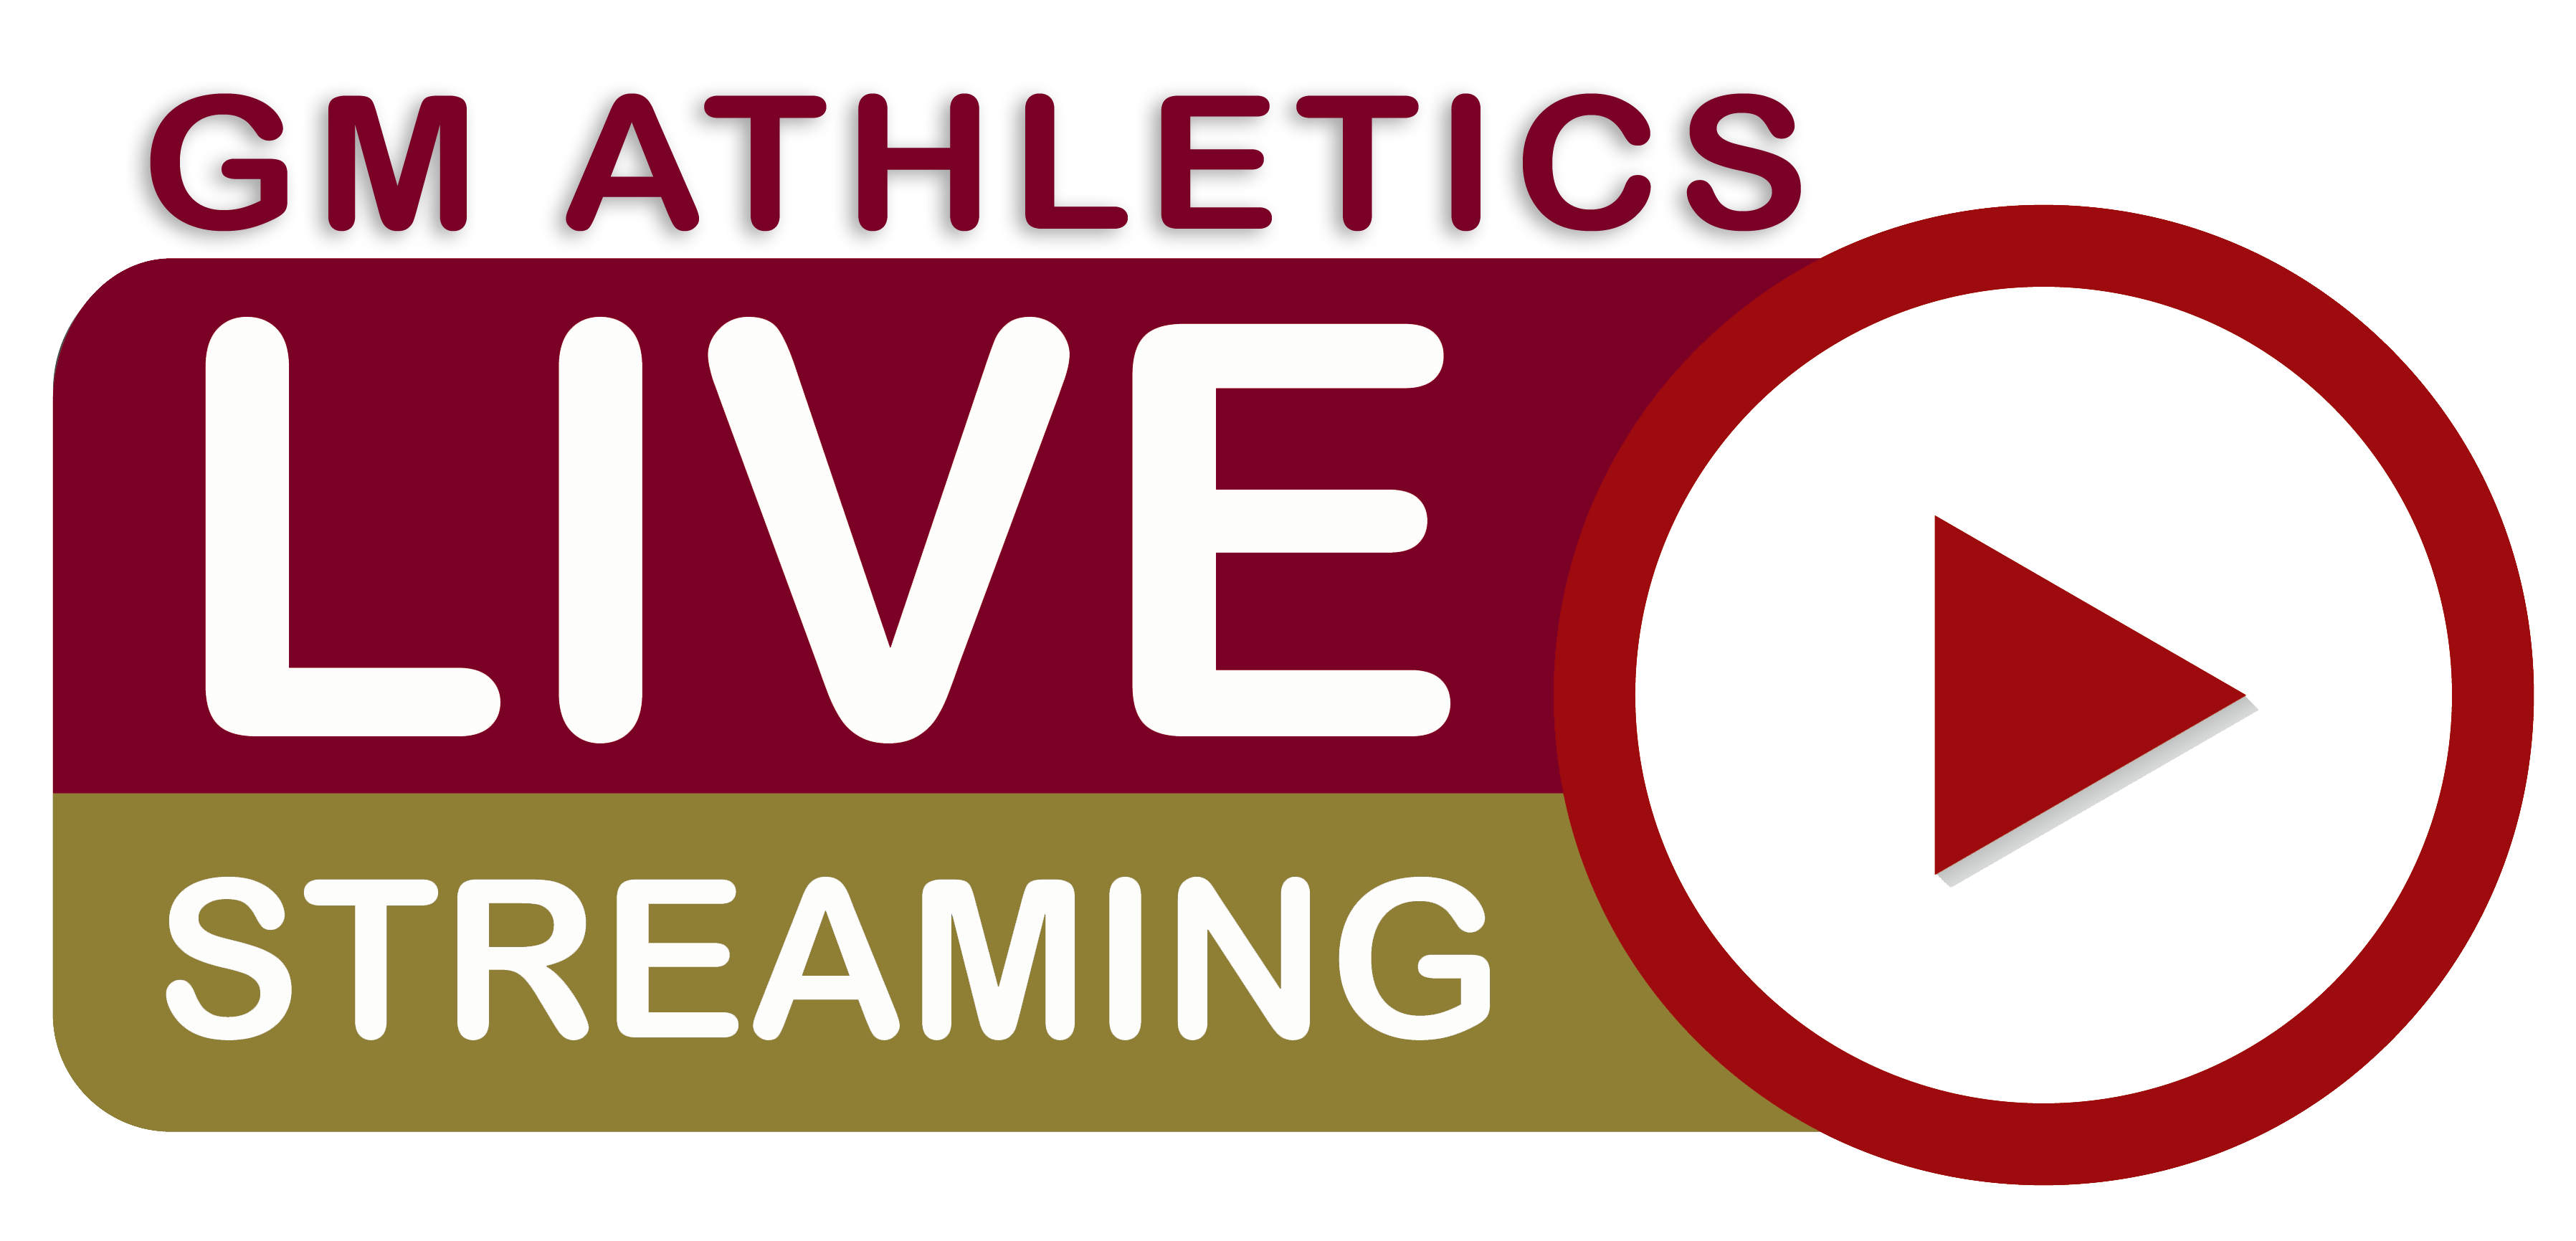 GM Athletics Live Stream